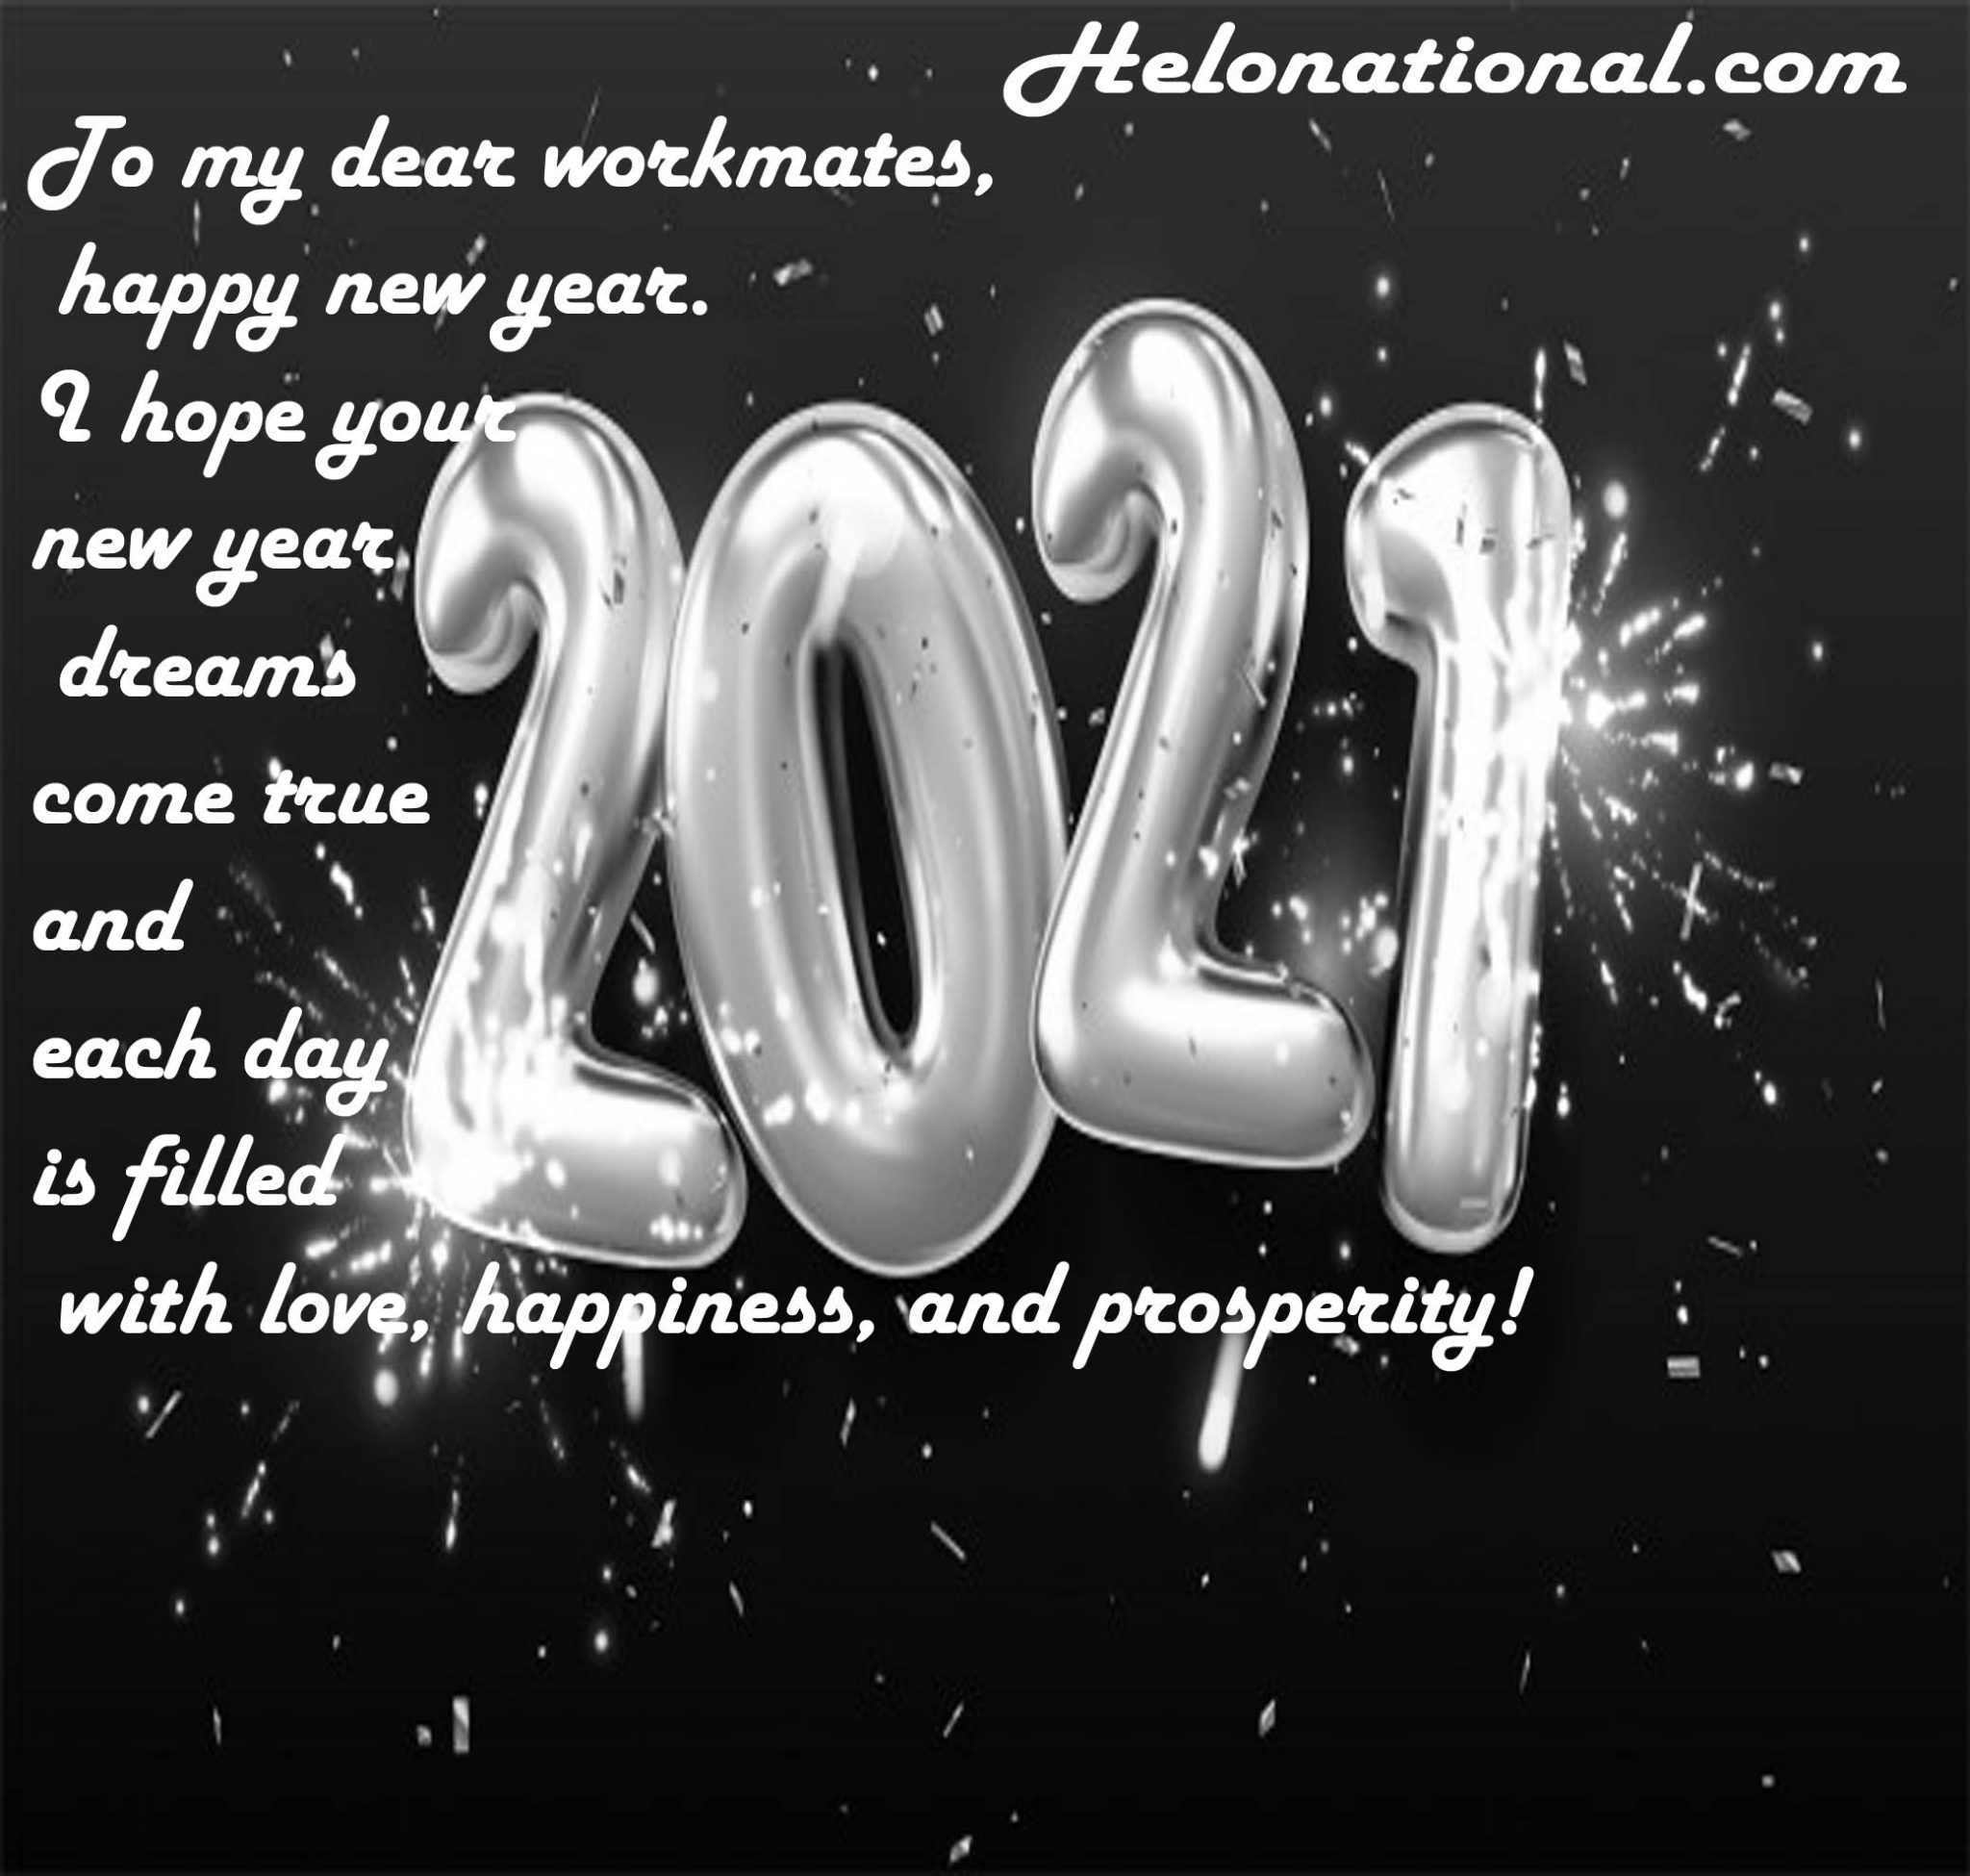 HNy 2021 messages for collogues